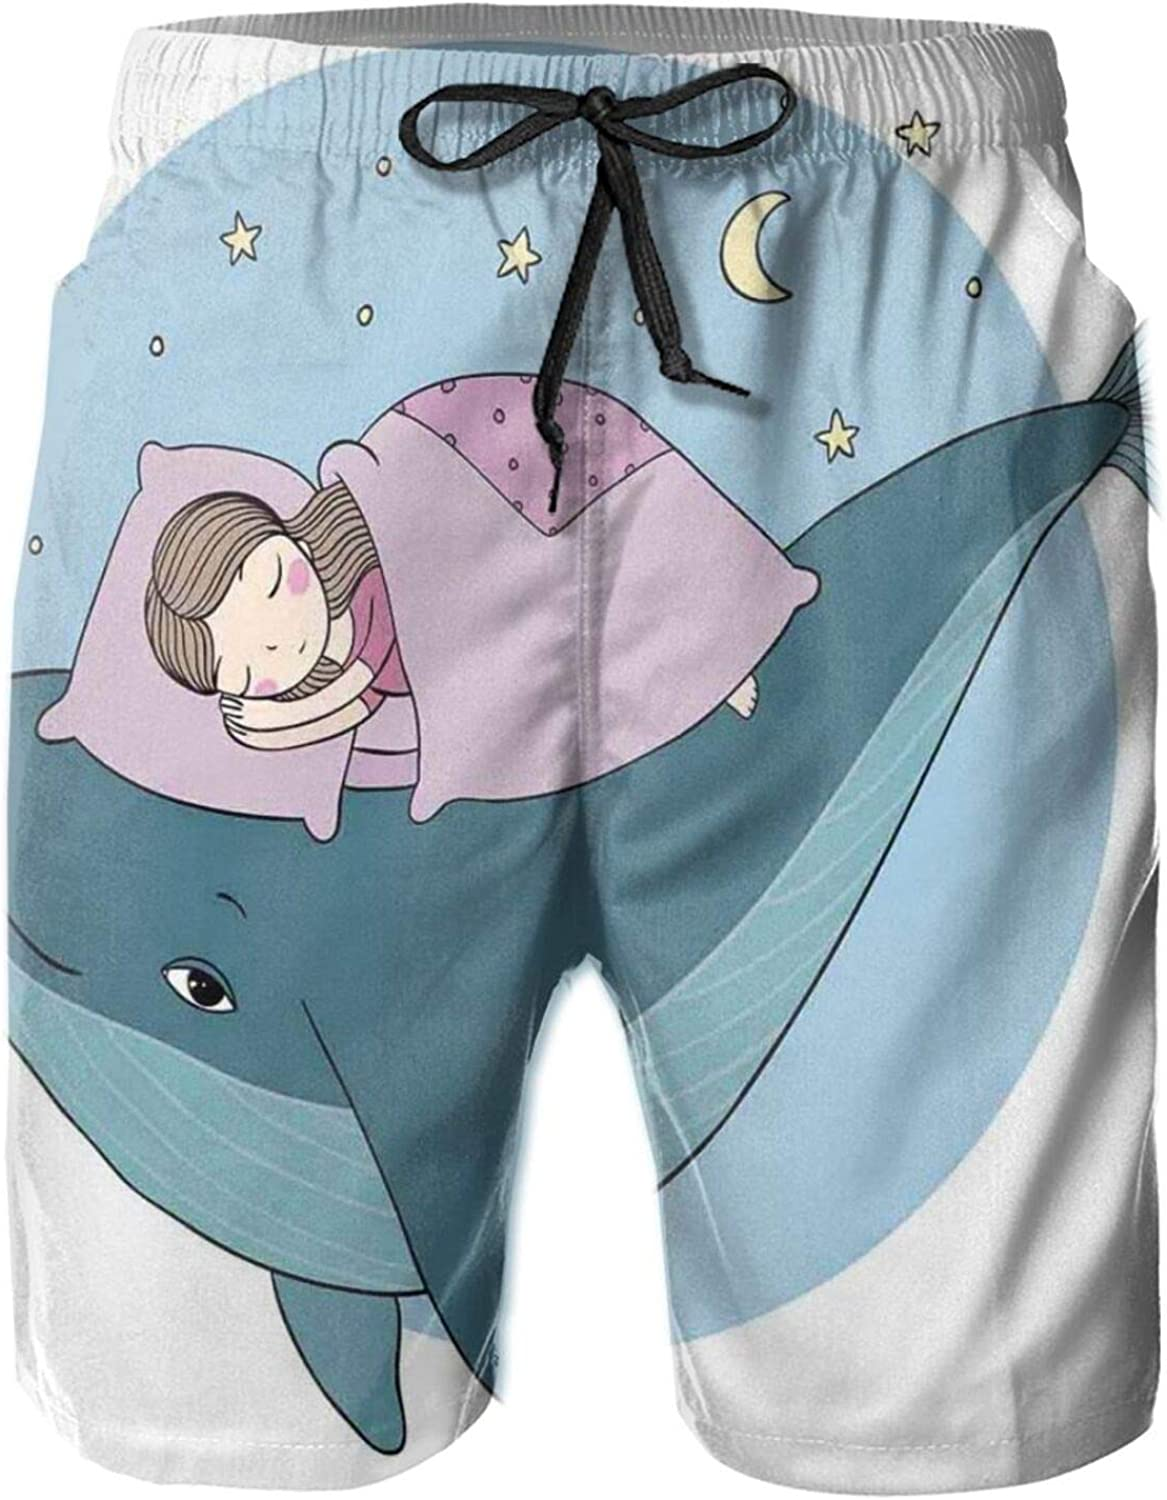 Hand Drawn Style Little Girl is Sleeping On A Whale Cozy Bed in The Night Sea Mens Swim Shorts Casual Workout Short Pants Drawstring Beach Shorts,XXL